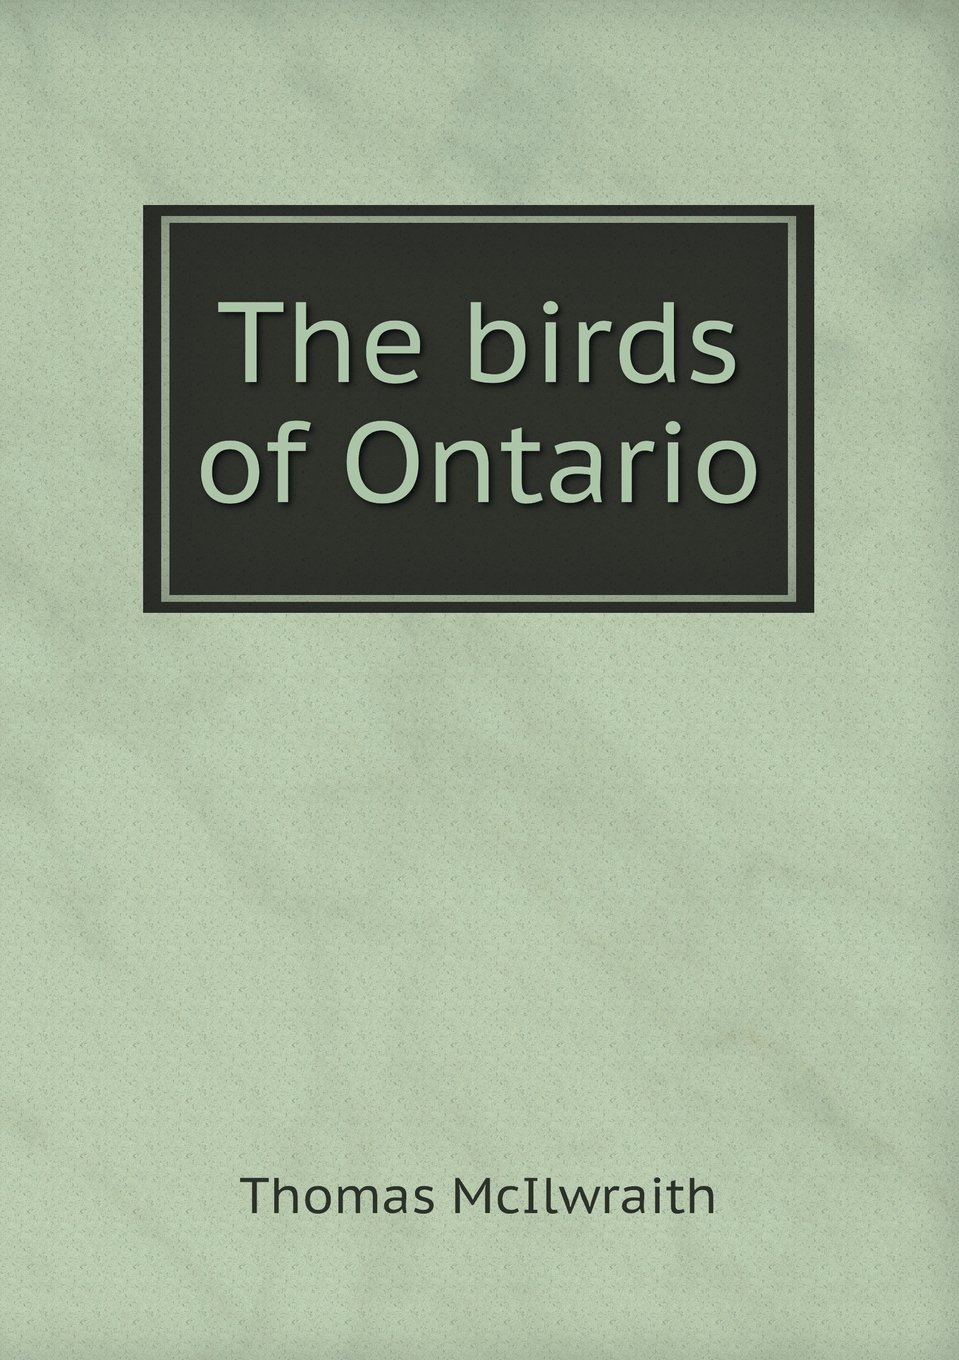 The birds of Ontario PDF